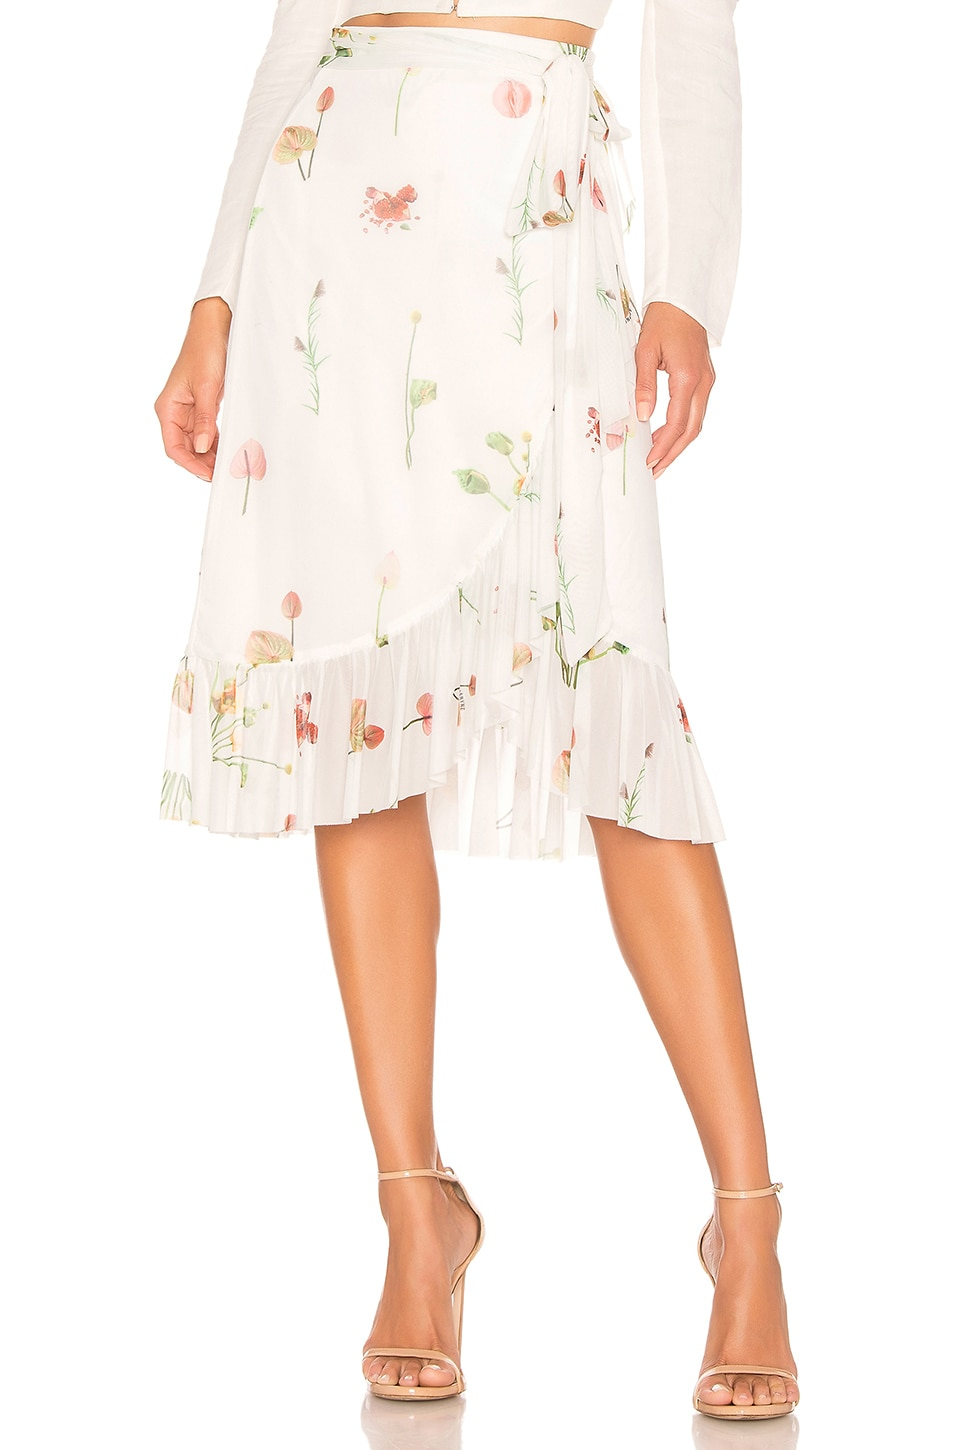 Aeryne Mellie Skirt in Fleures Sauvages Blanc